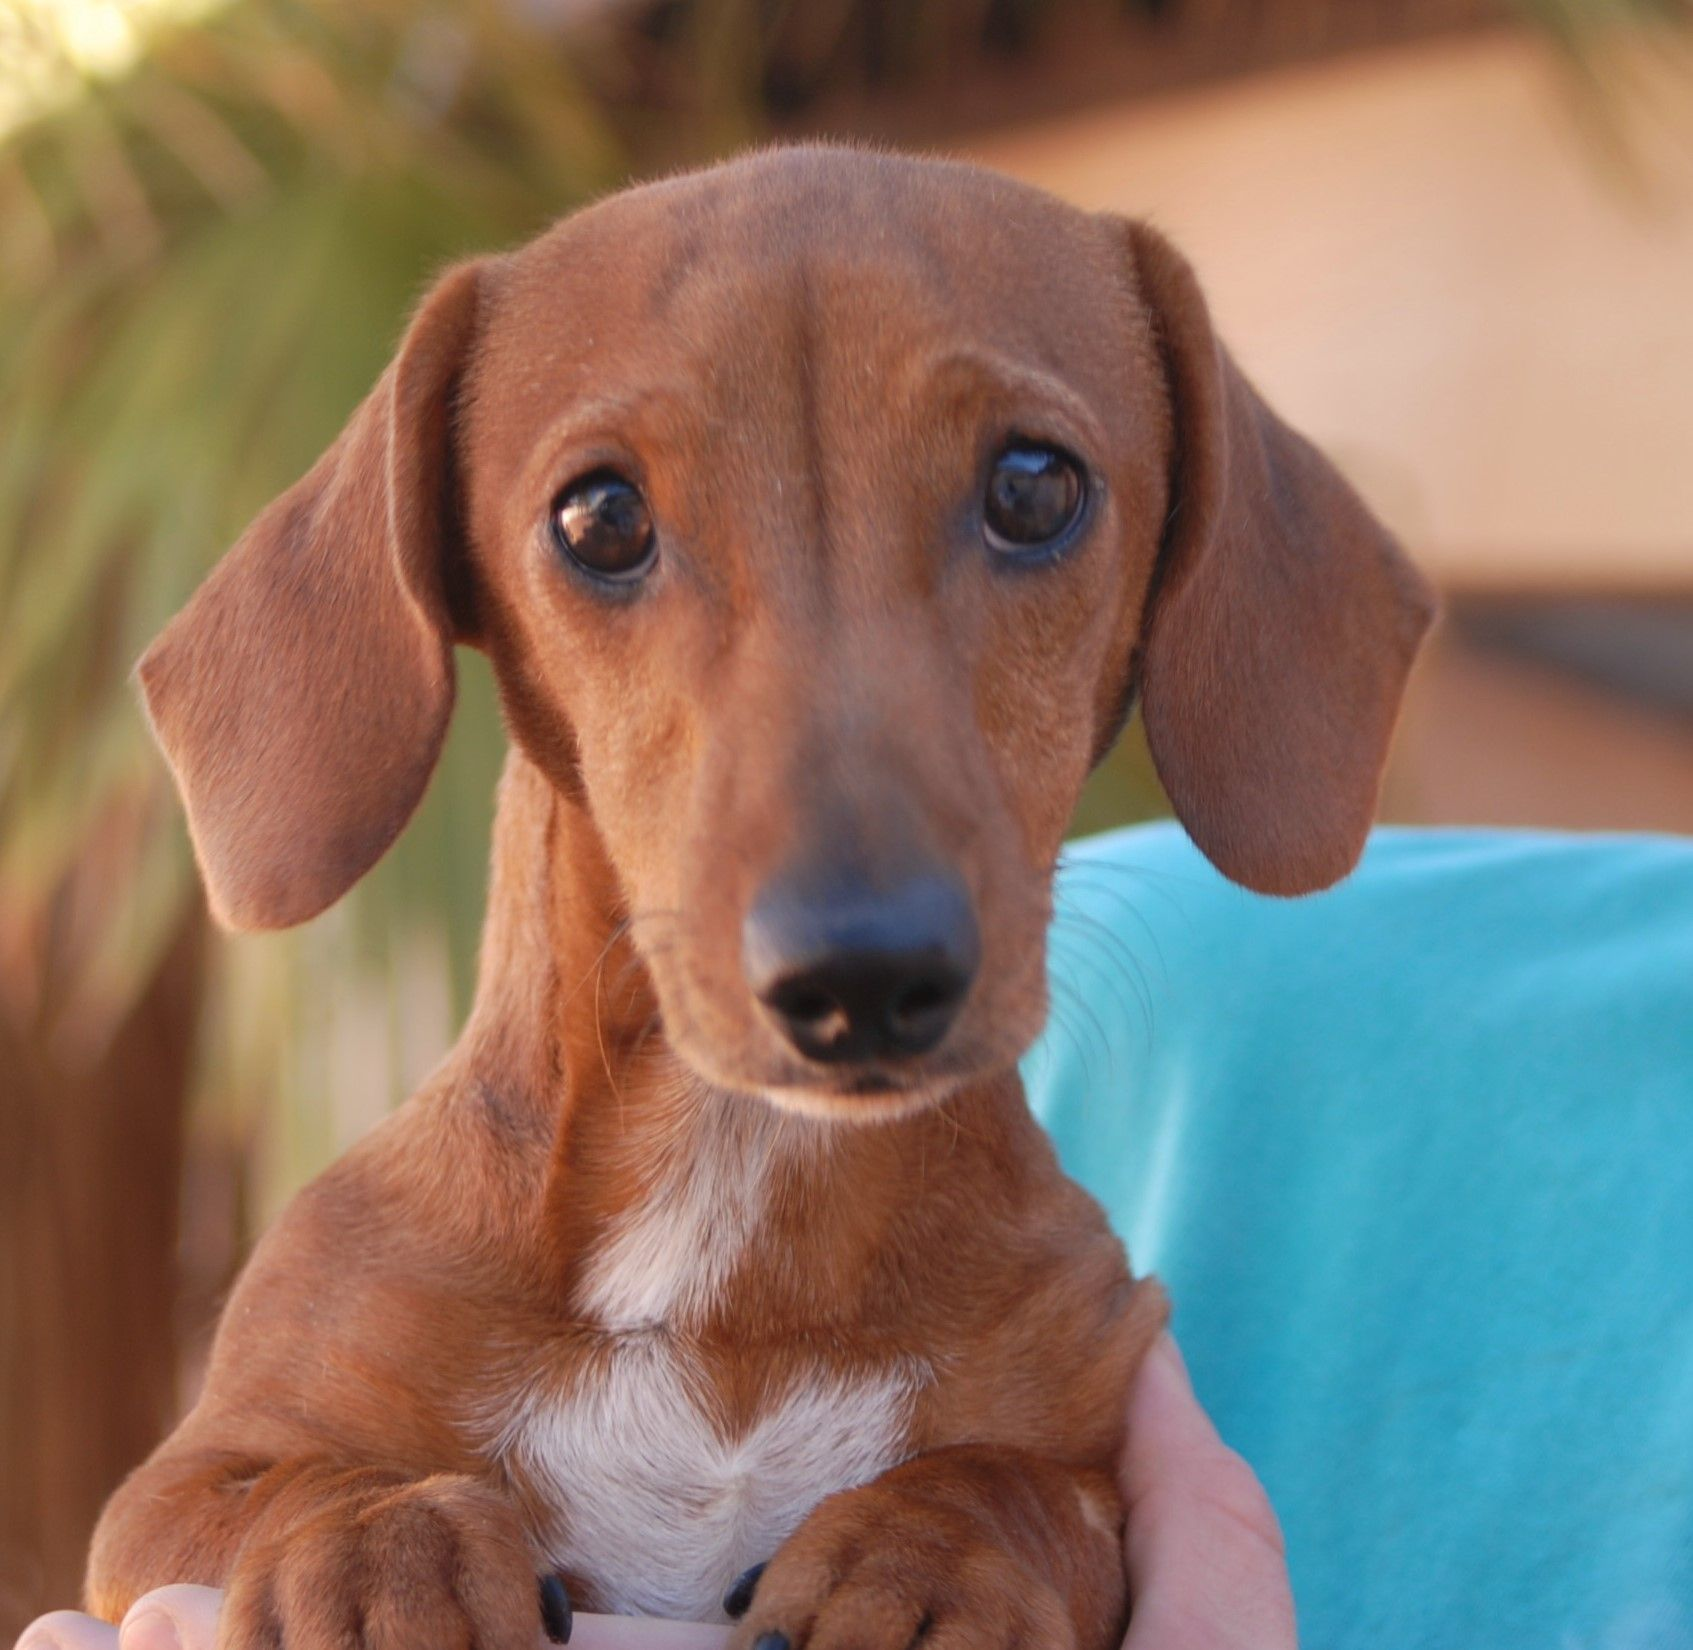 Linus An Adorable Dachshund Puppy Debuts For Adoption Today At